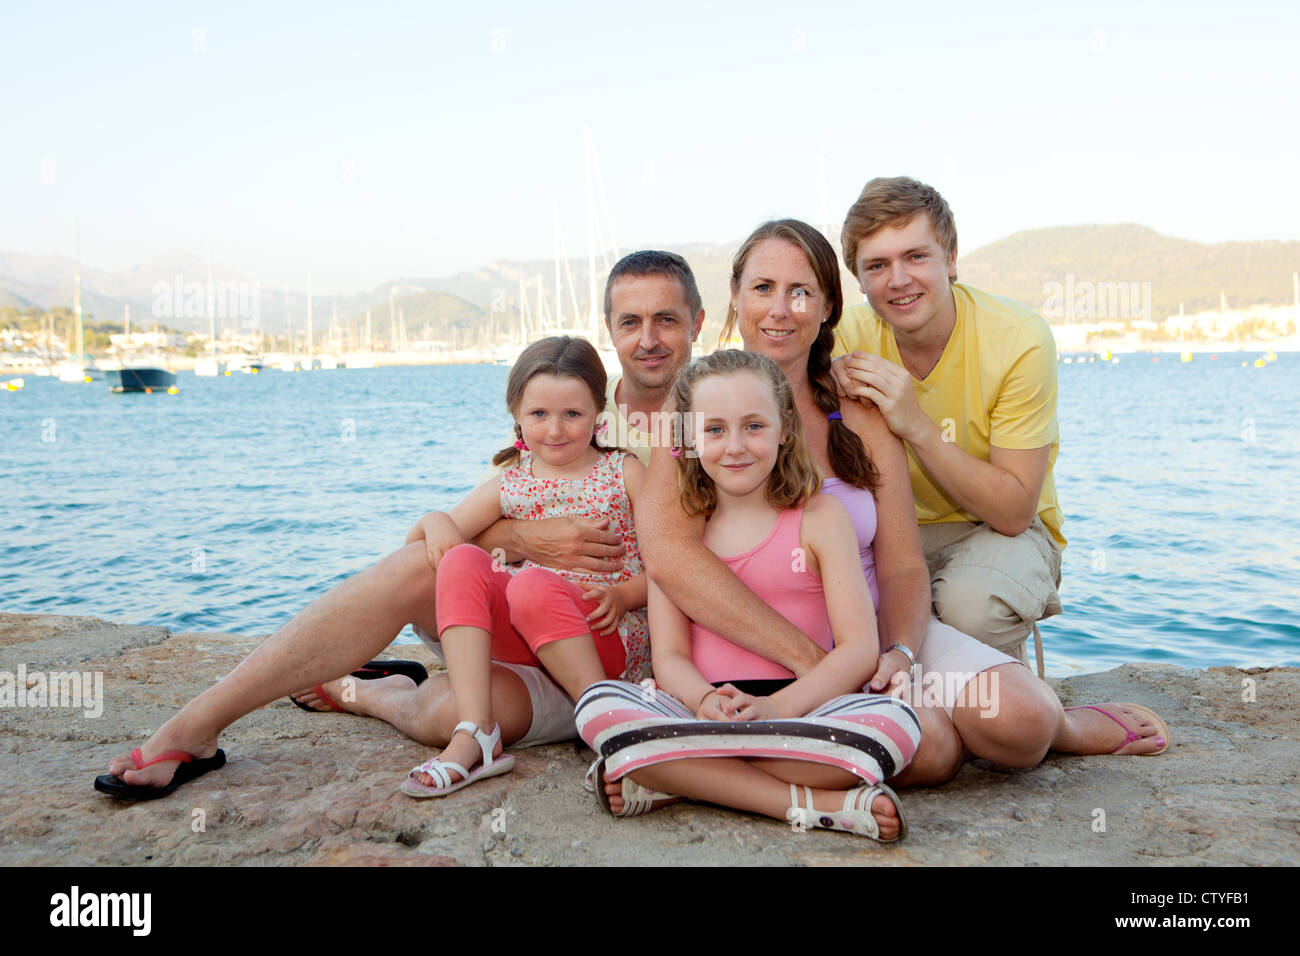 happy family on summer vacation or holiday - Stock Image